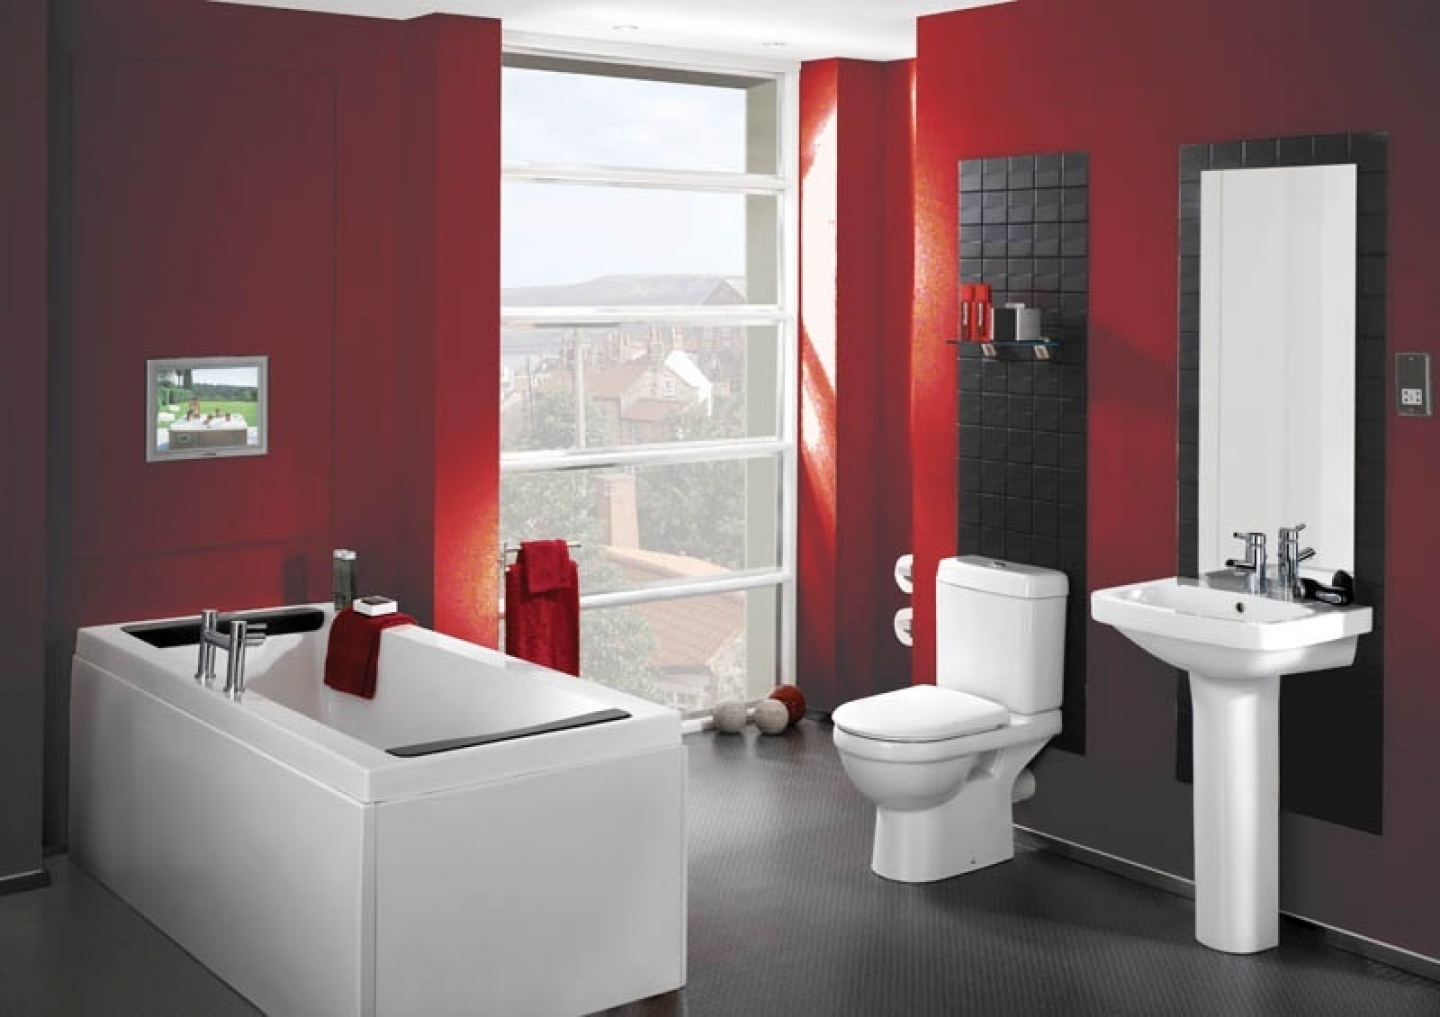 Interior decoration of bathroom - Bathroom Decorating Ideas With White And Red Decoration Also Rectangle Bathtub